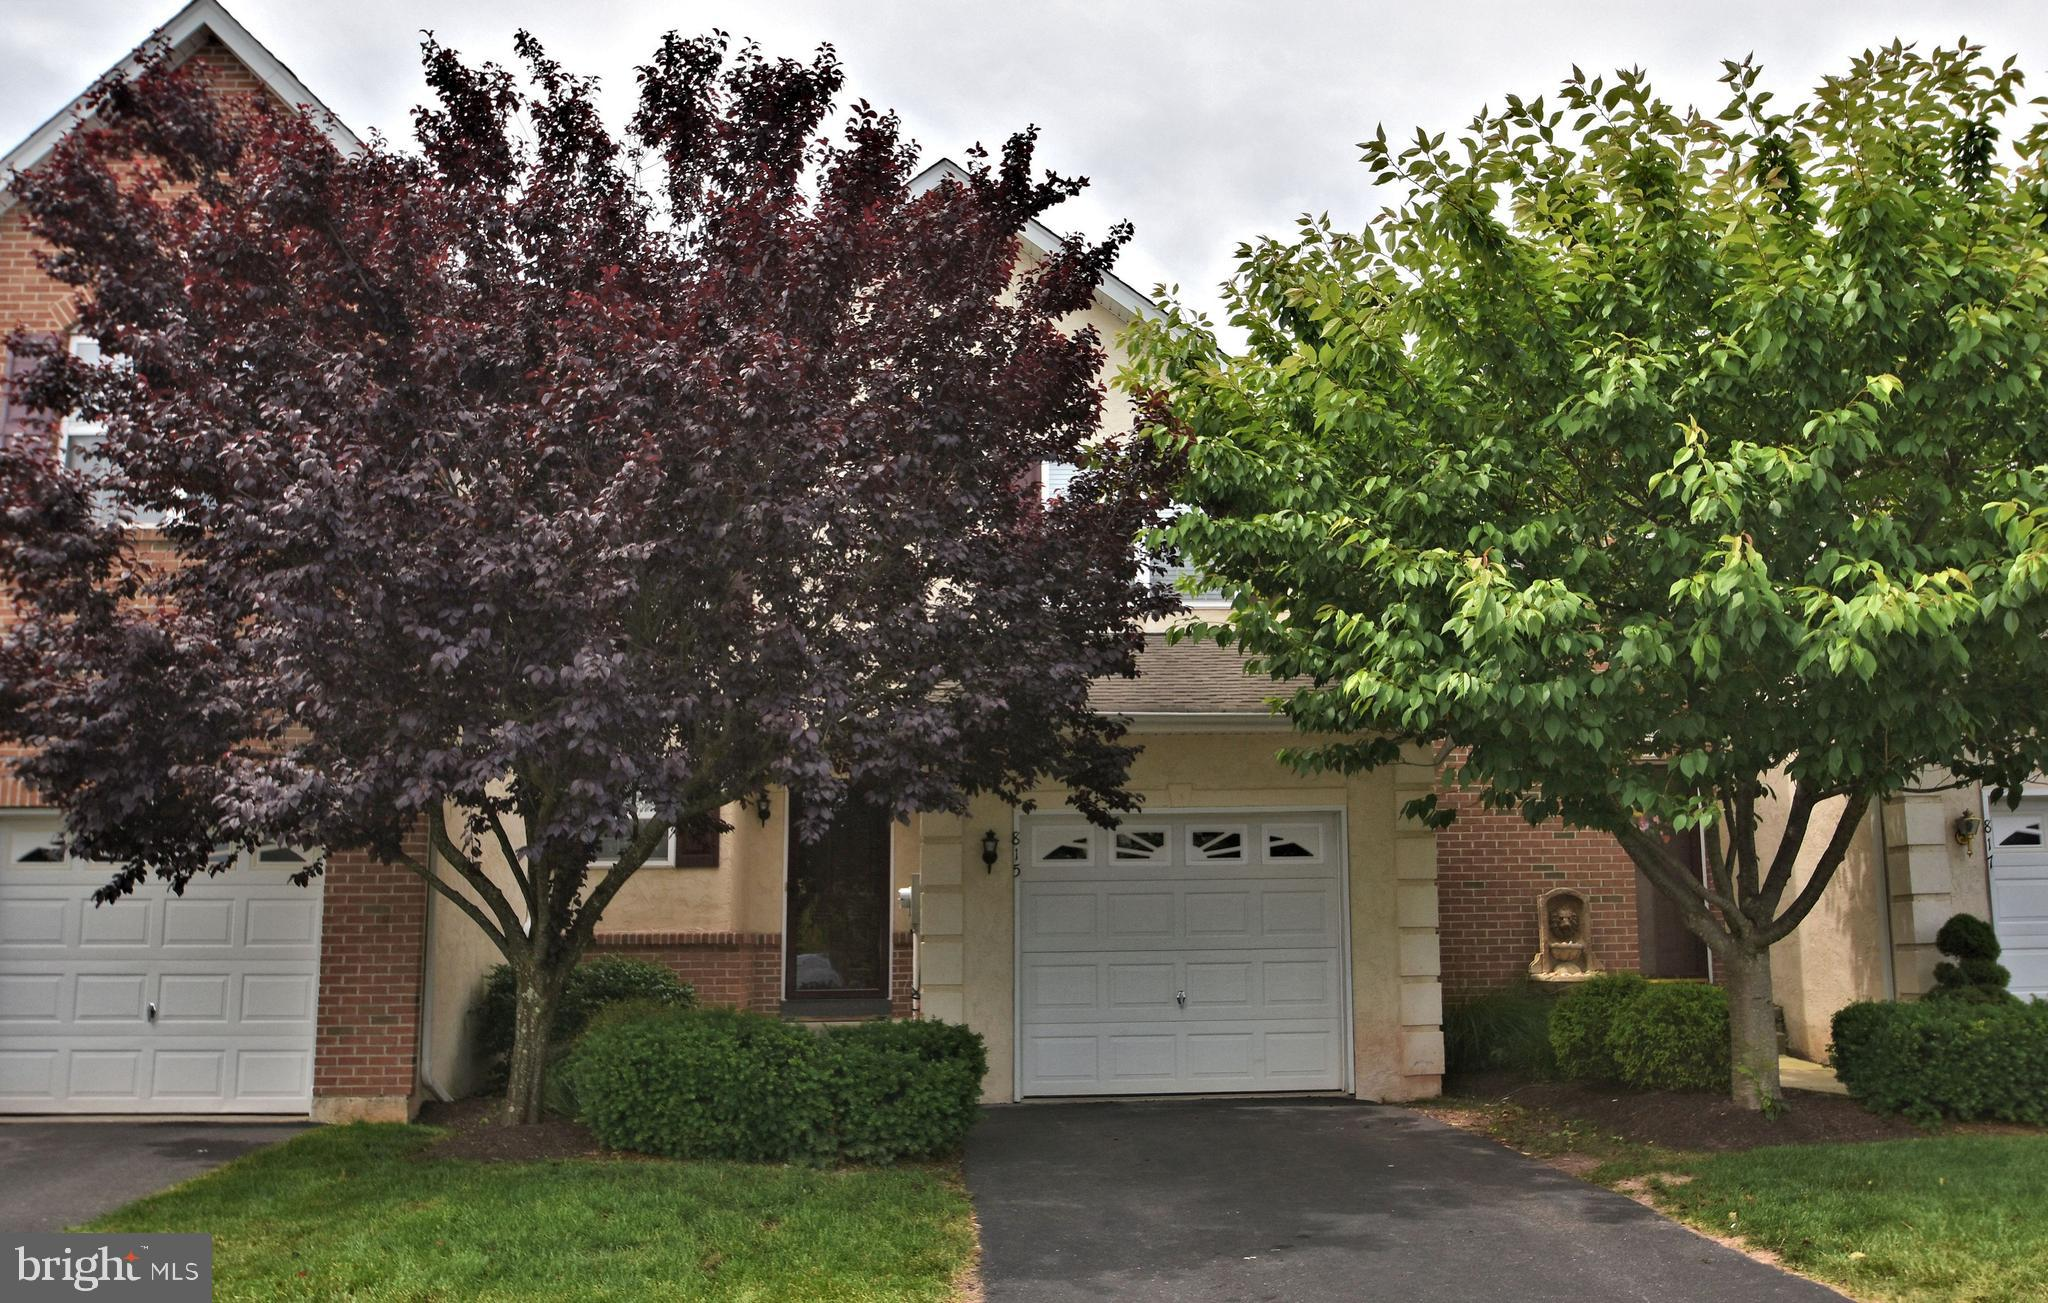 815 CARRINGTON DRIVE, RED HILL, PA 18076